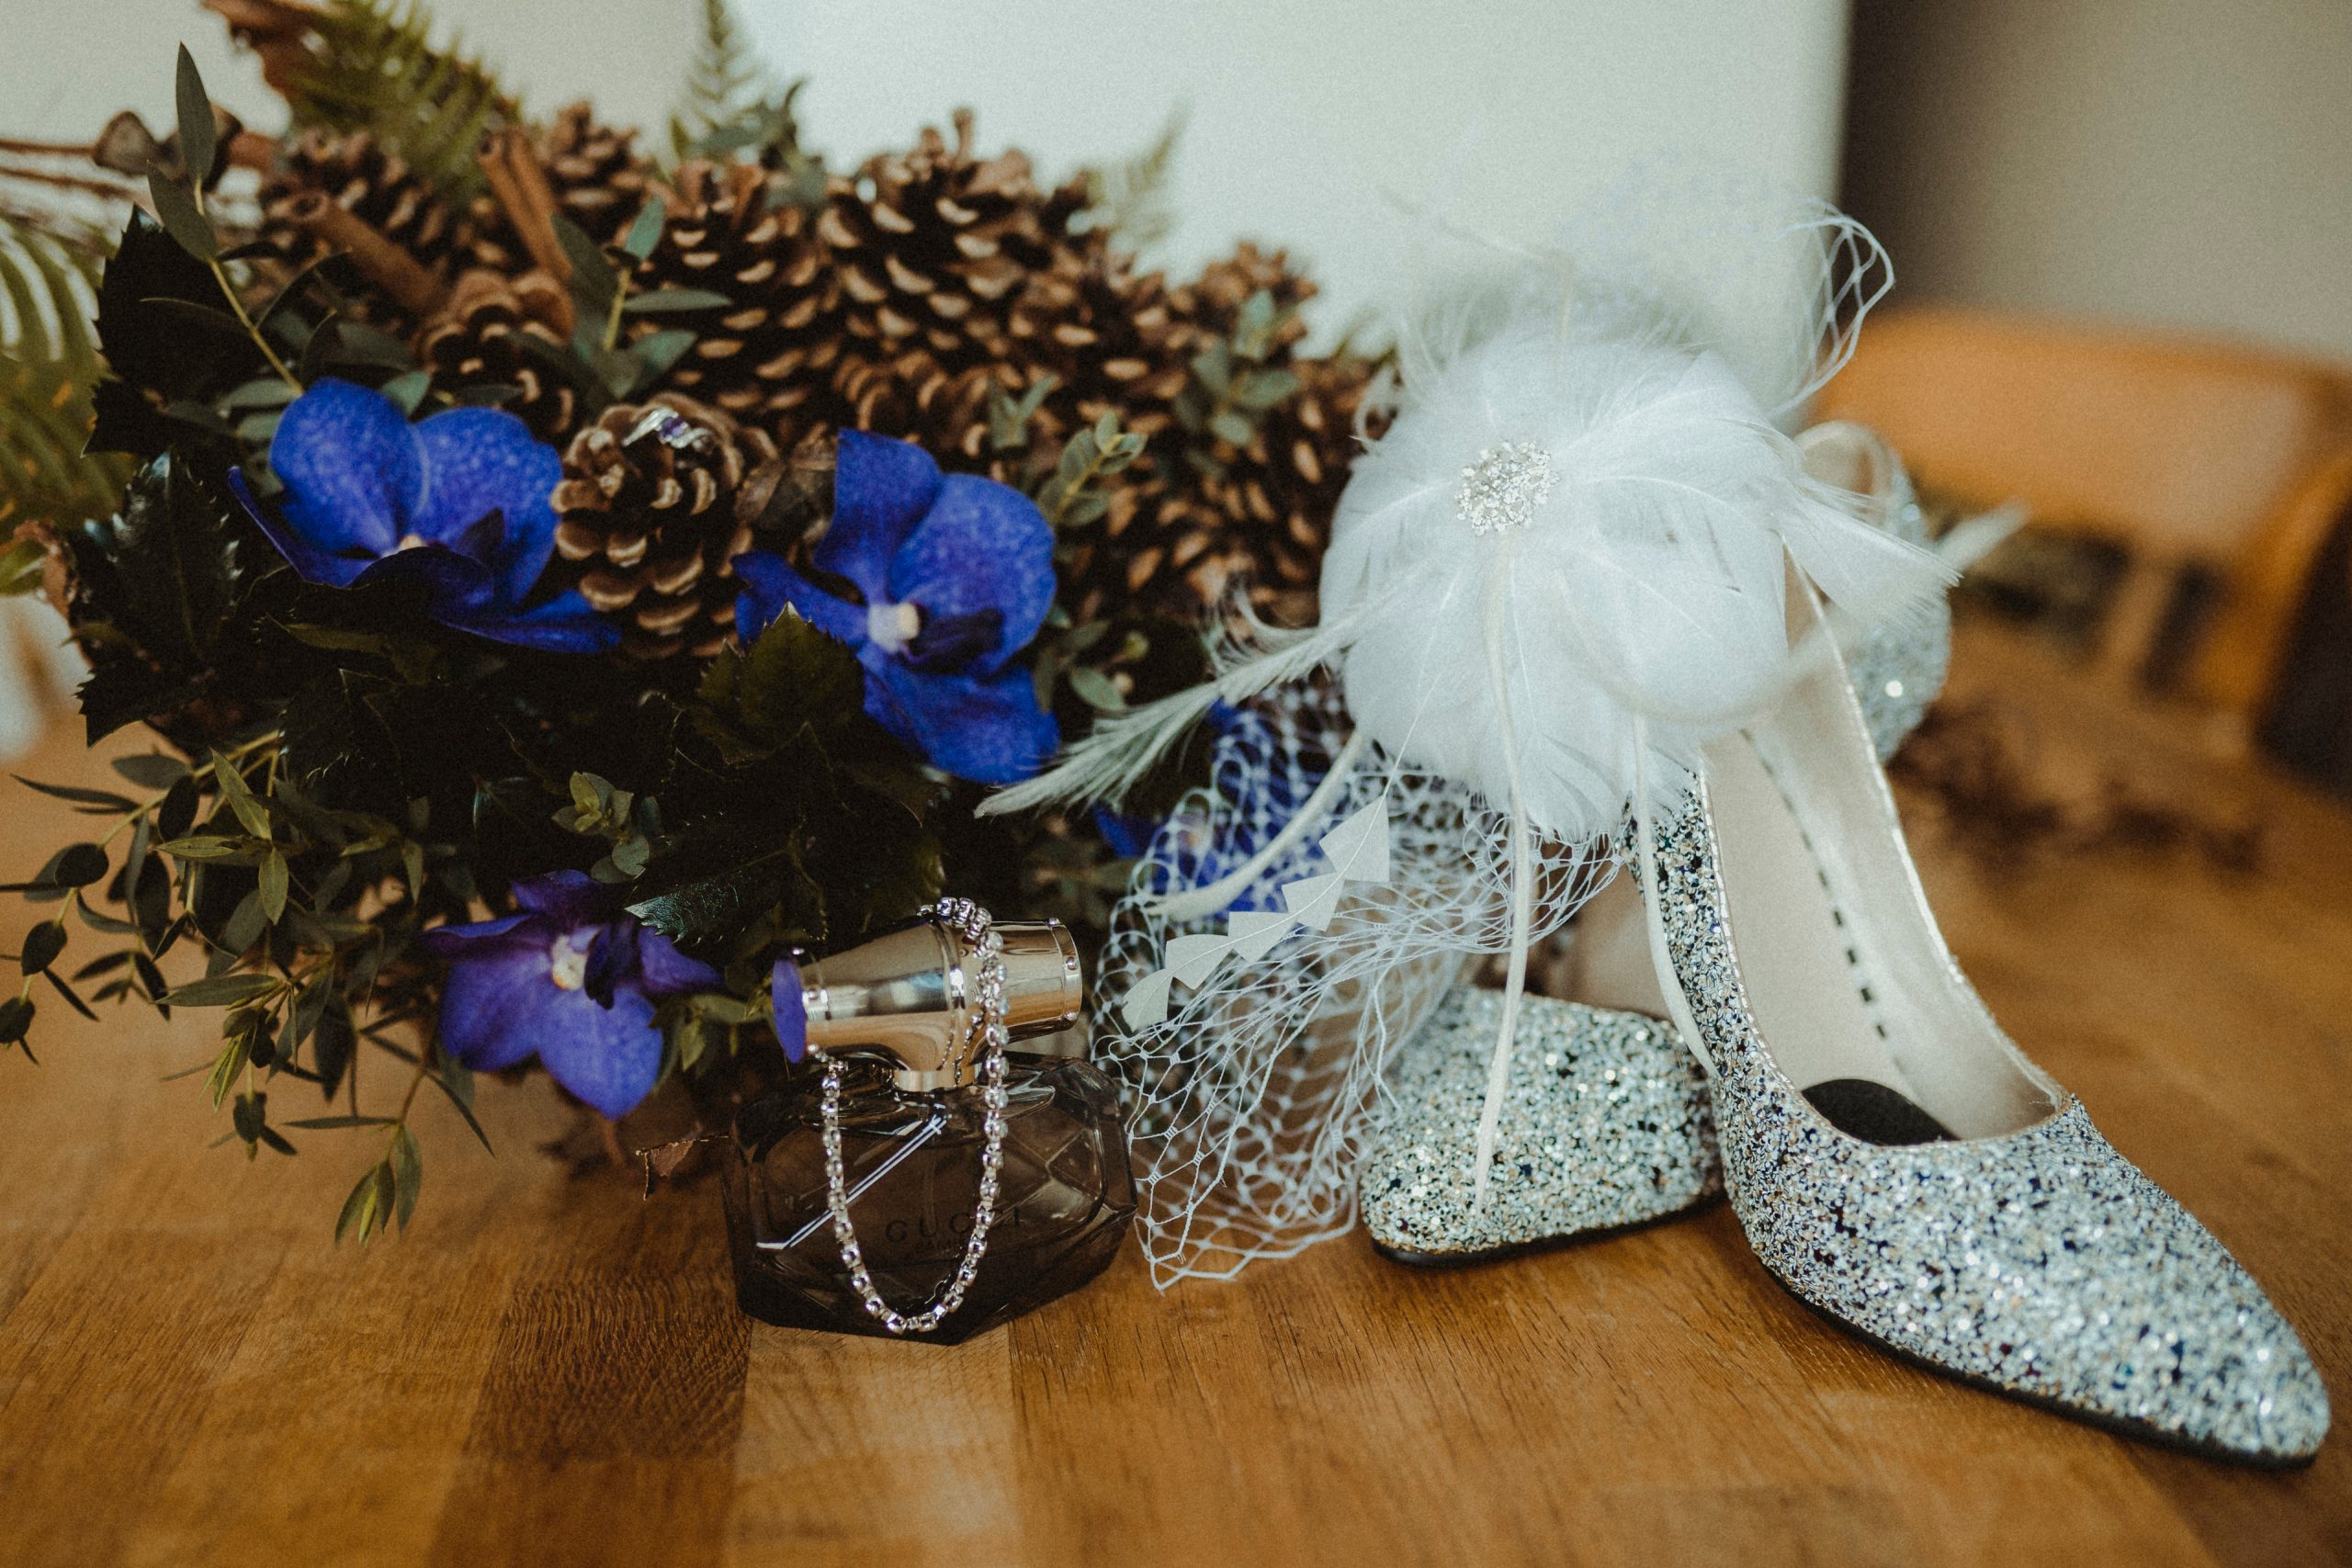 Brides wedding shoes and wedding flowers